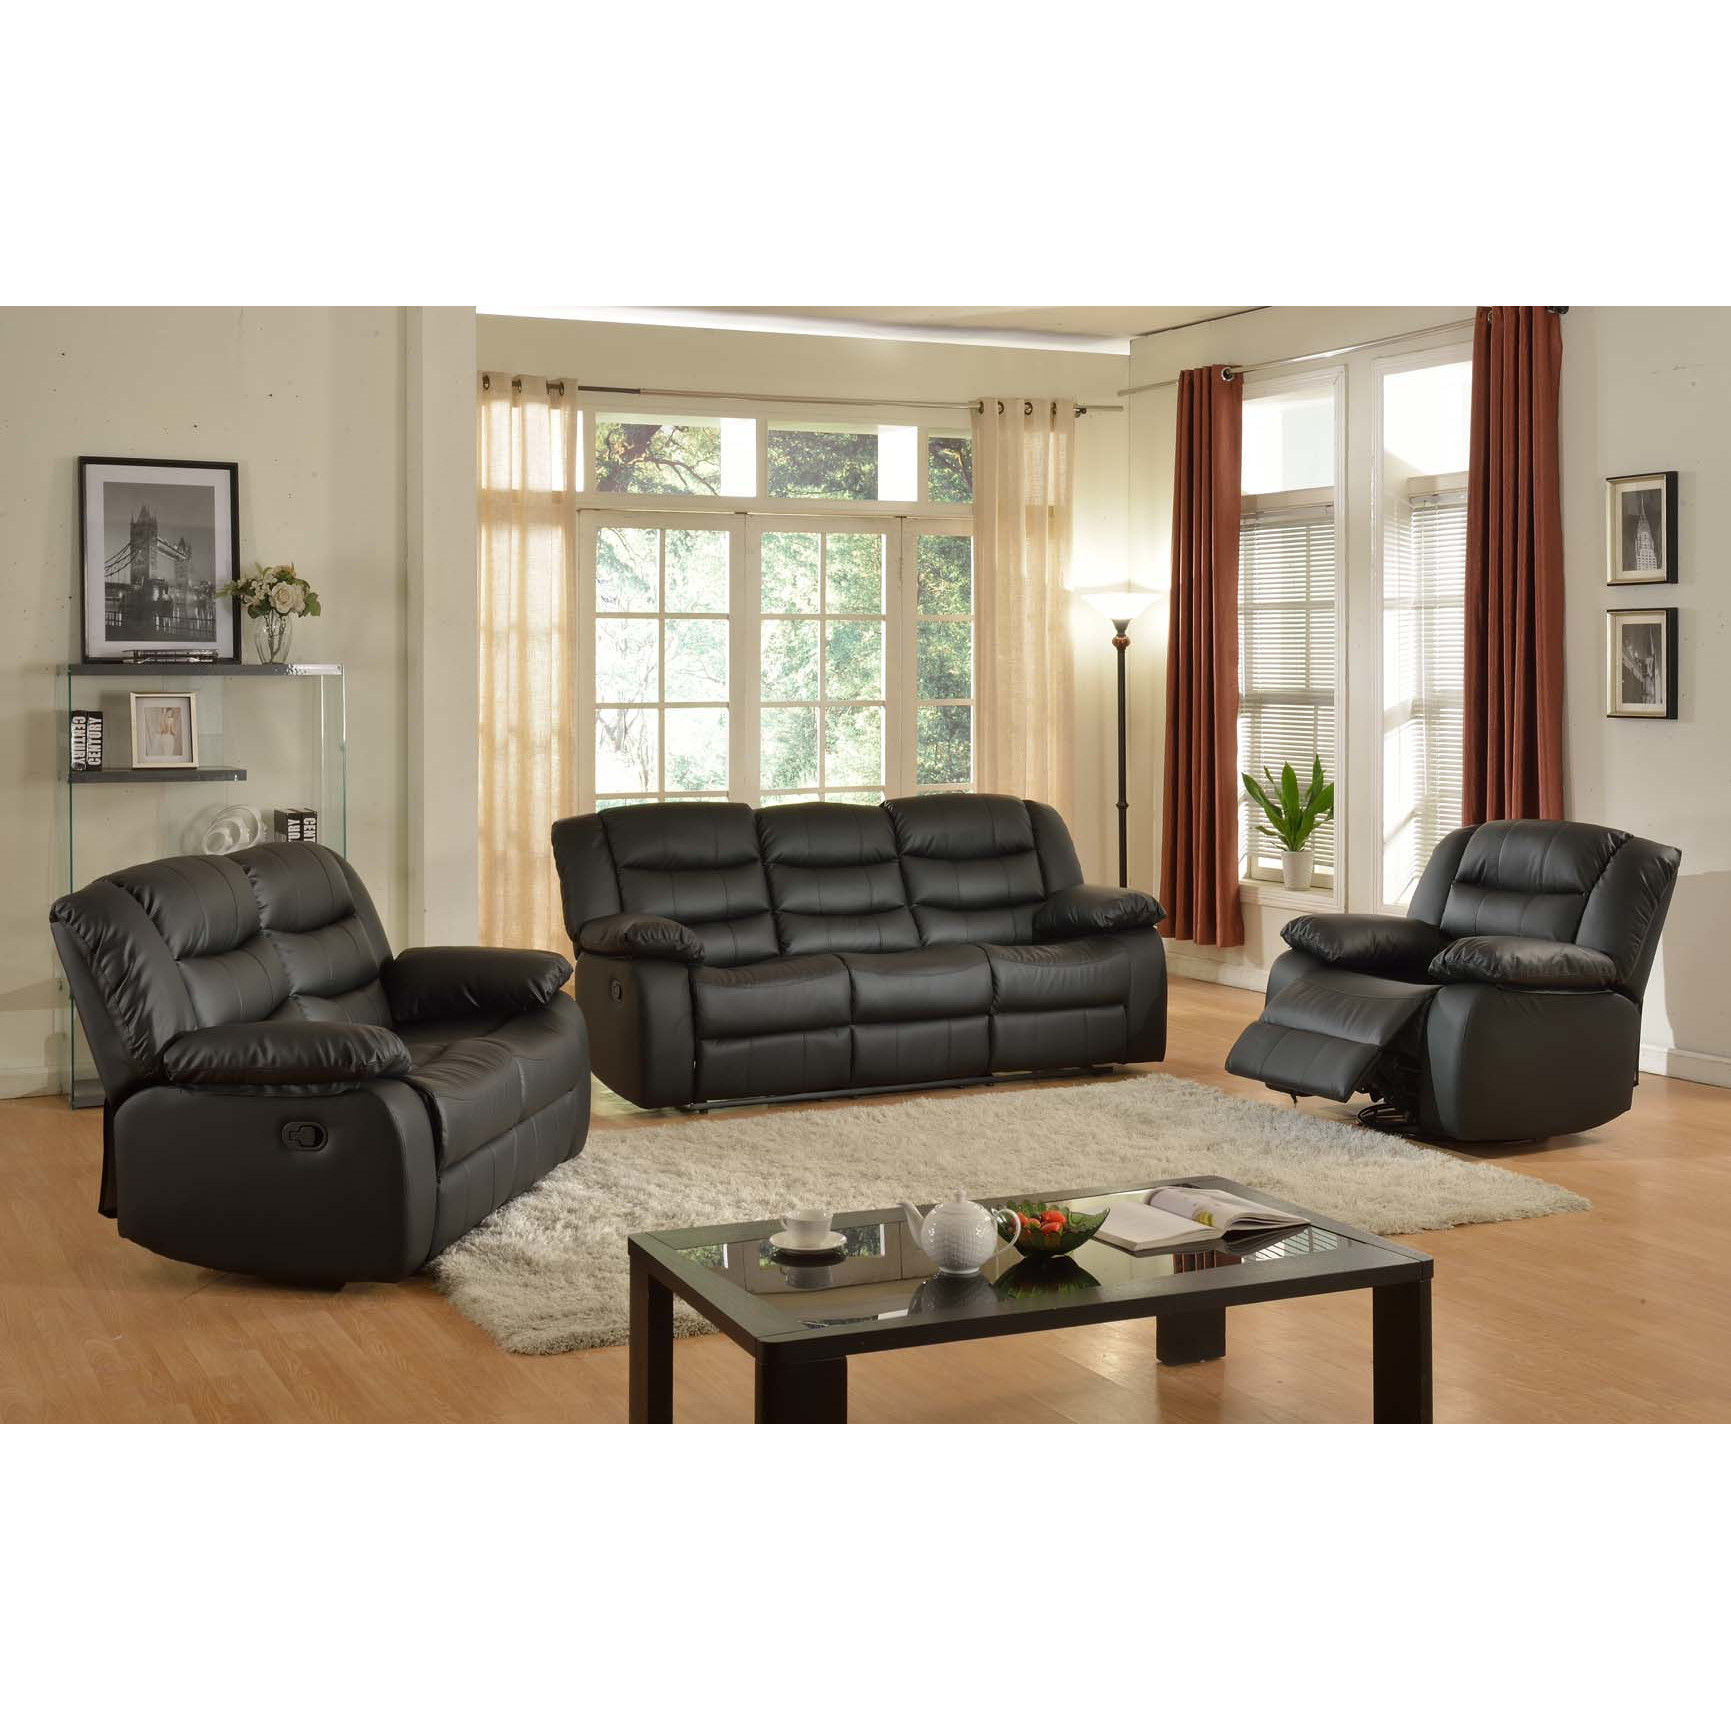 American Signature Furniture Going Out Of Business: Beautiful American Signature Sofa Gallery